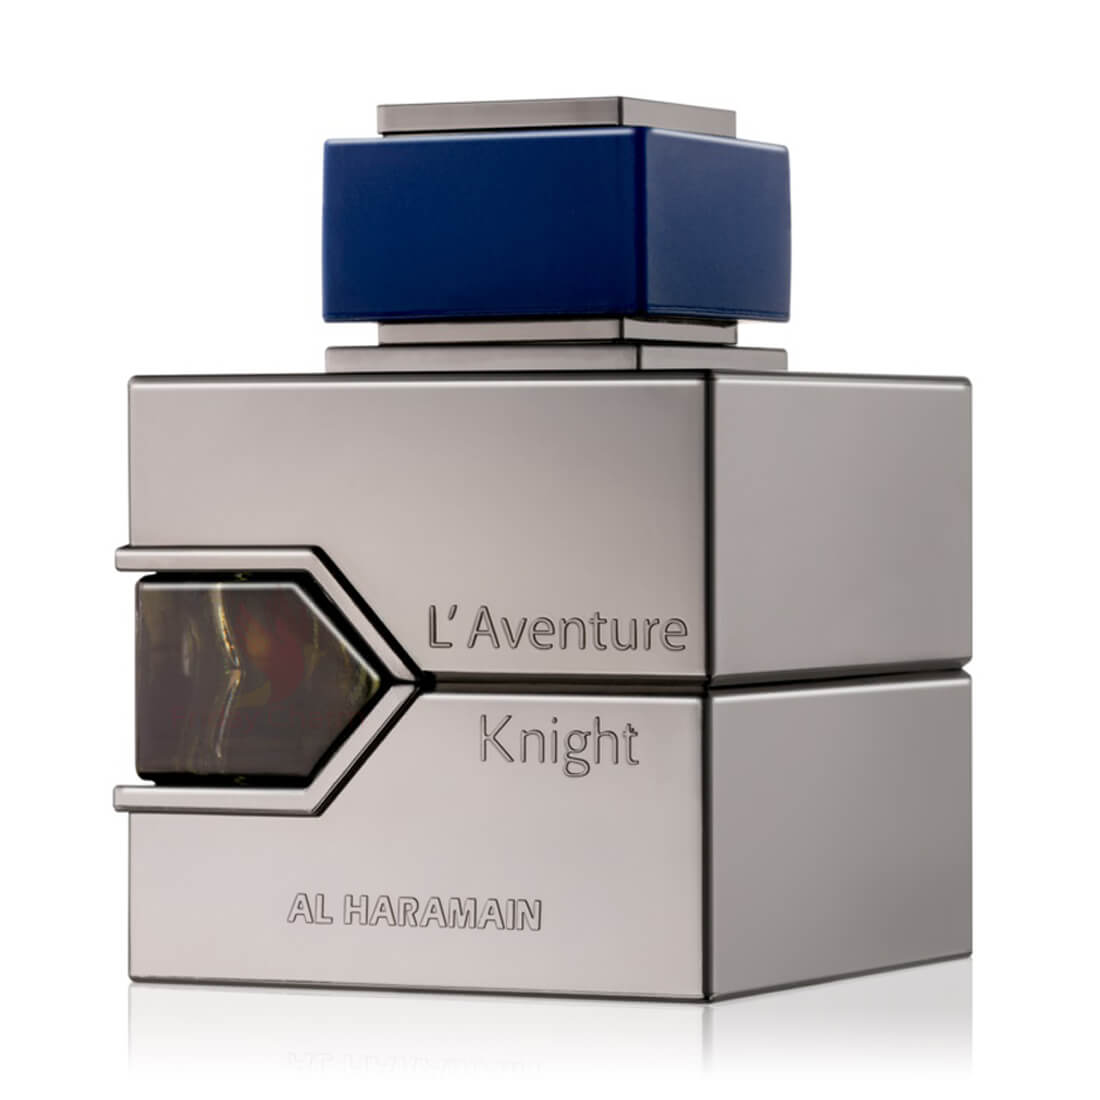 Al Haramain L'Aventure Knight Eau De Perfume Spray - 100ml